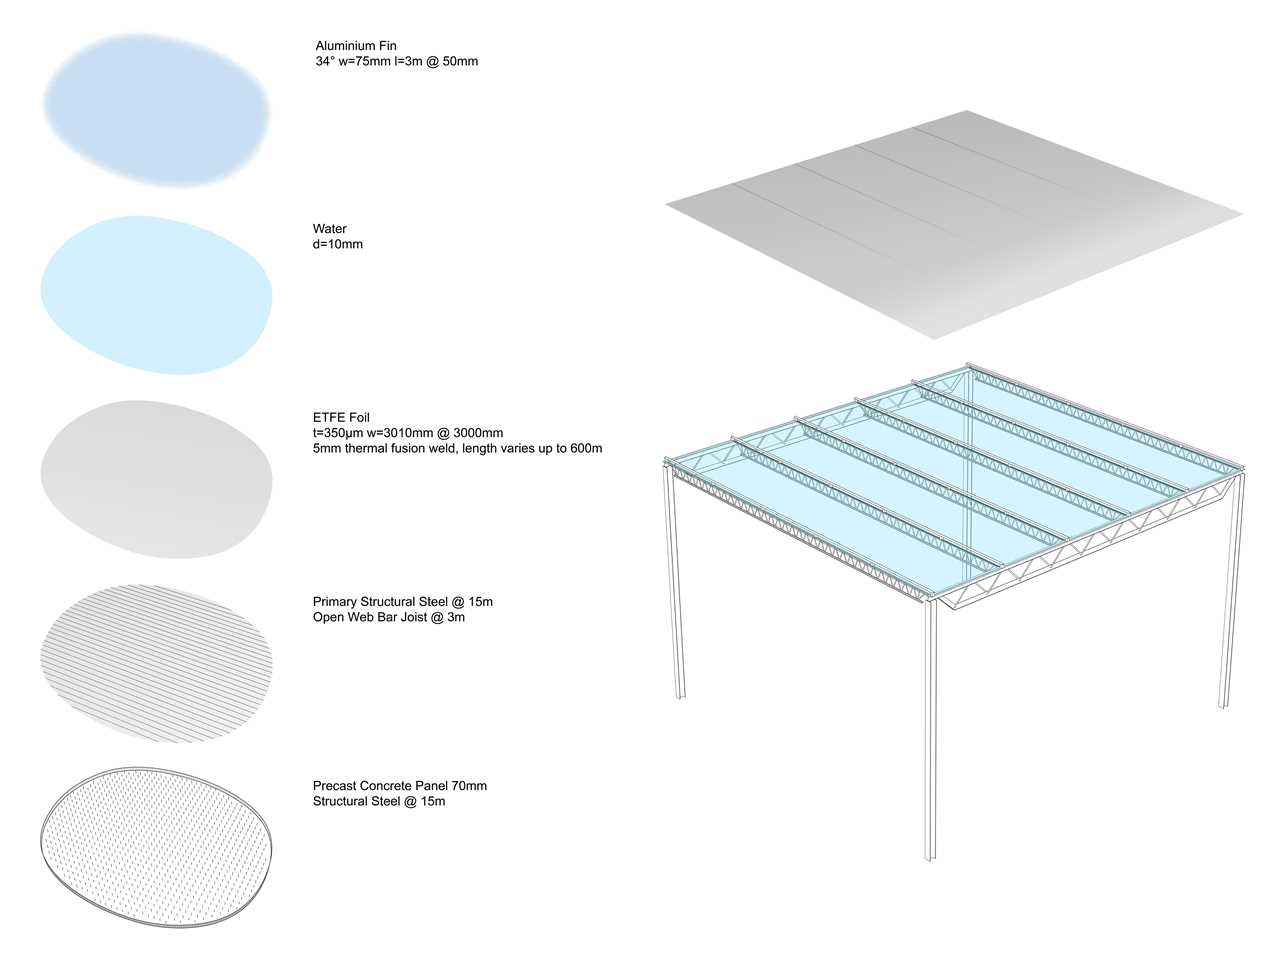 Prototype for a evaporative roof for radiant cooling, Cherry Valley, CA, USA